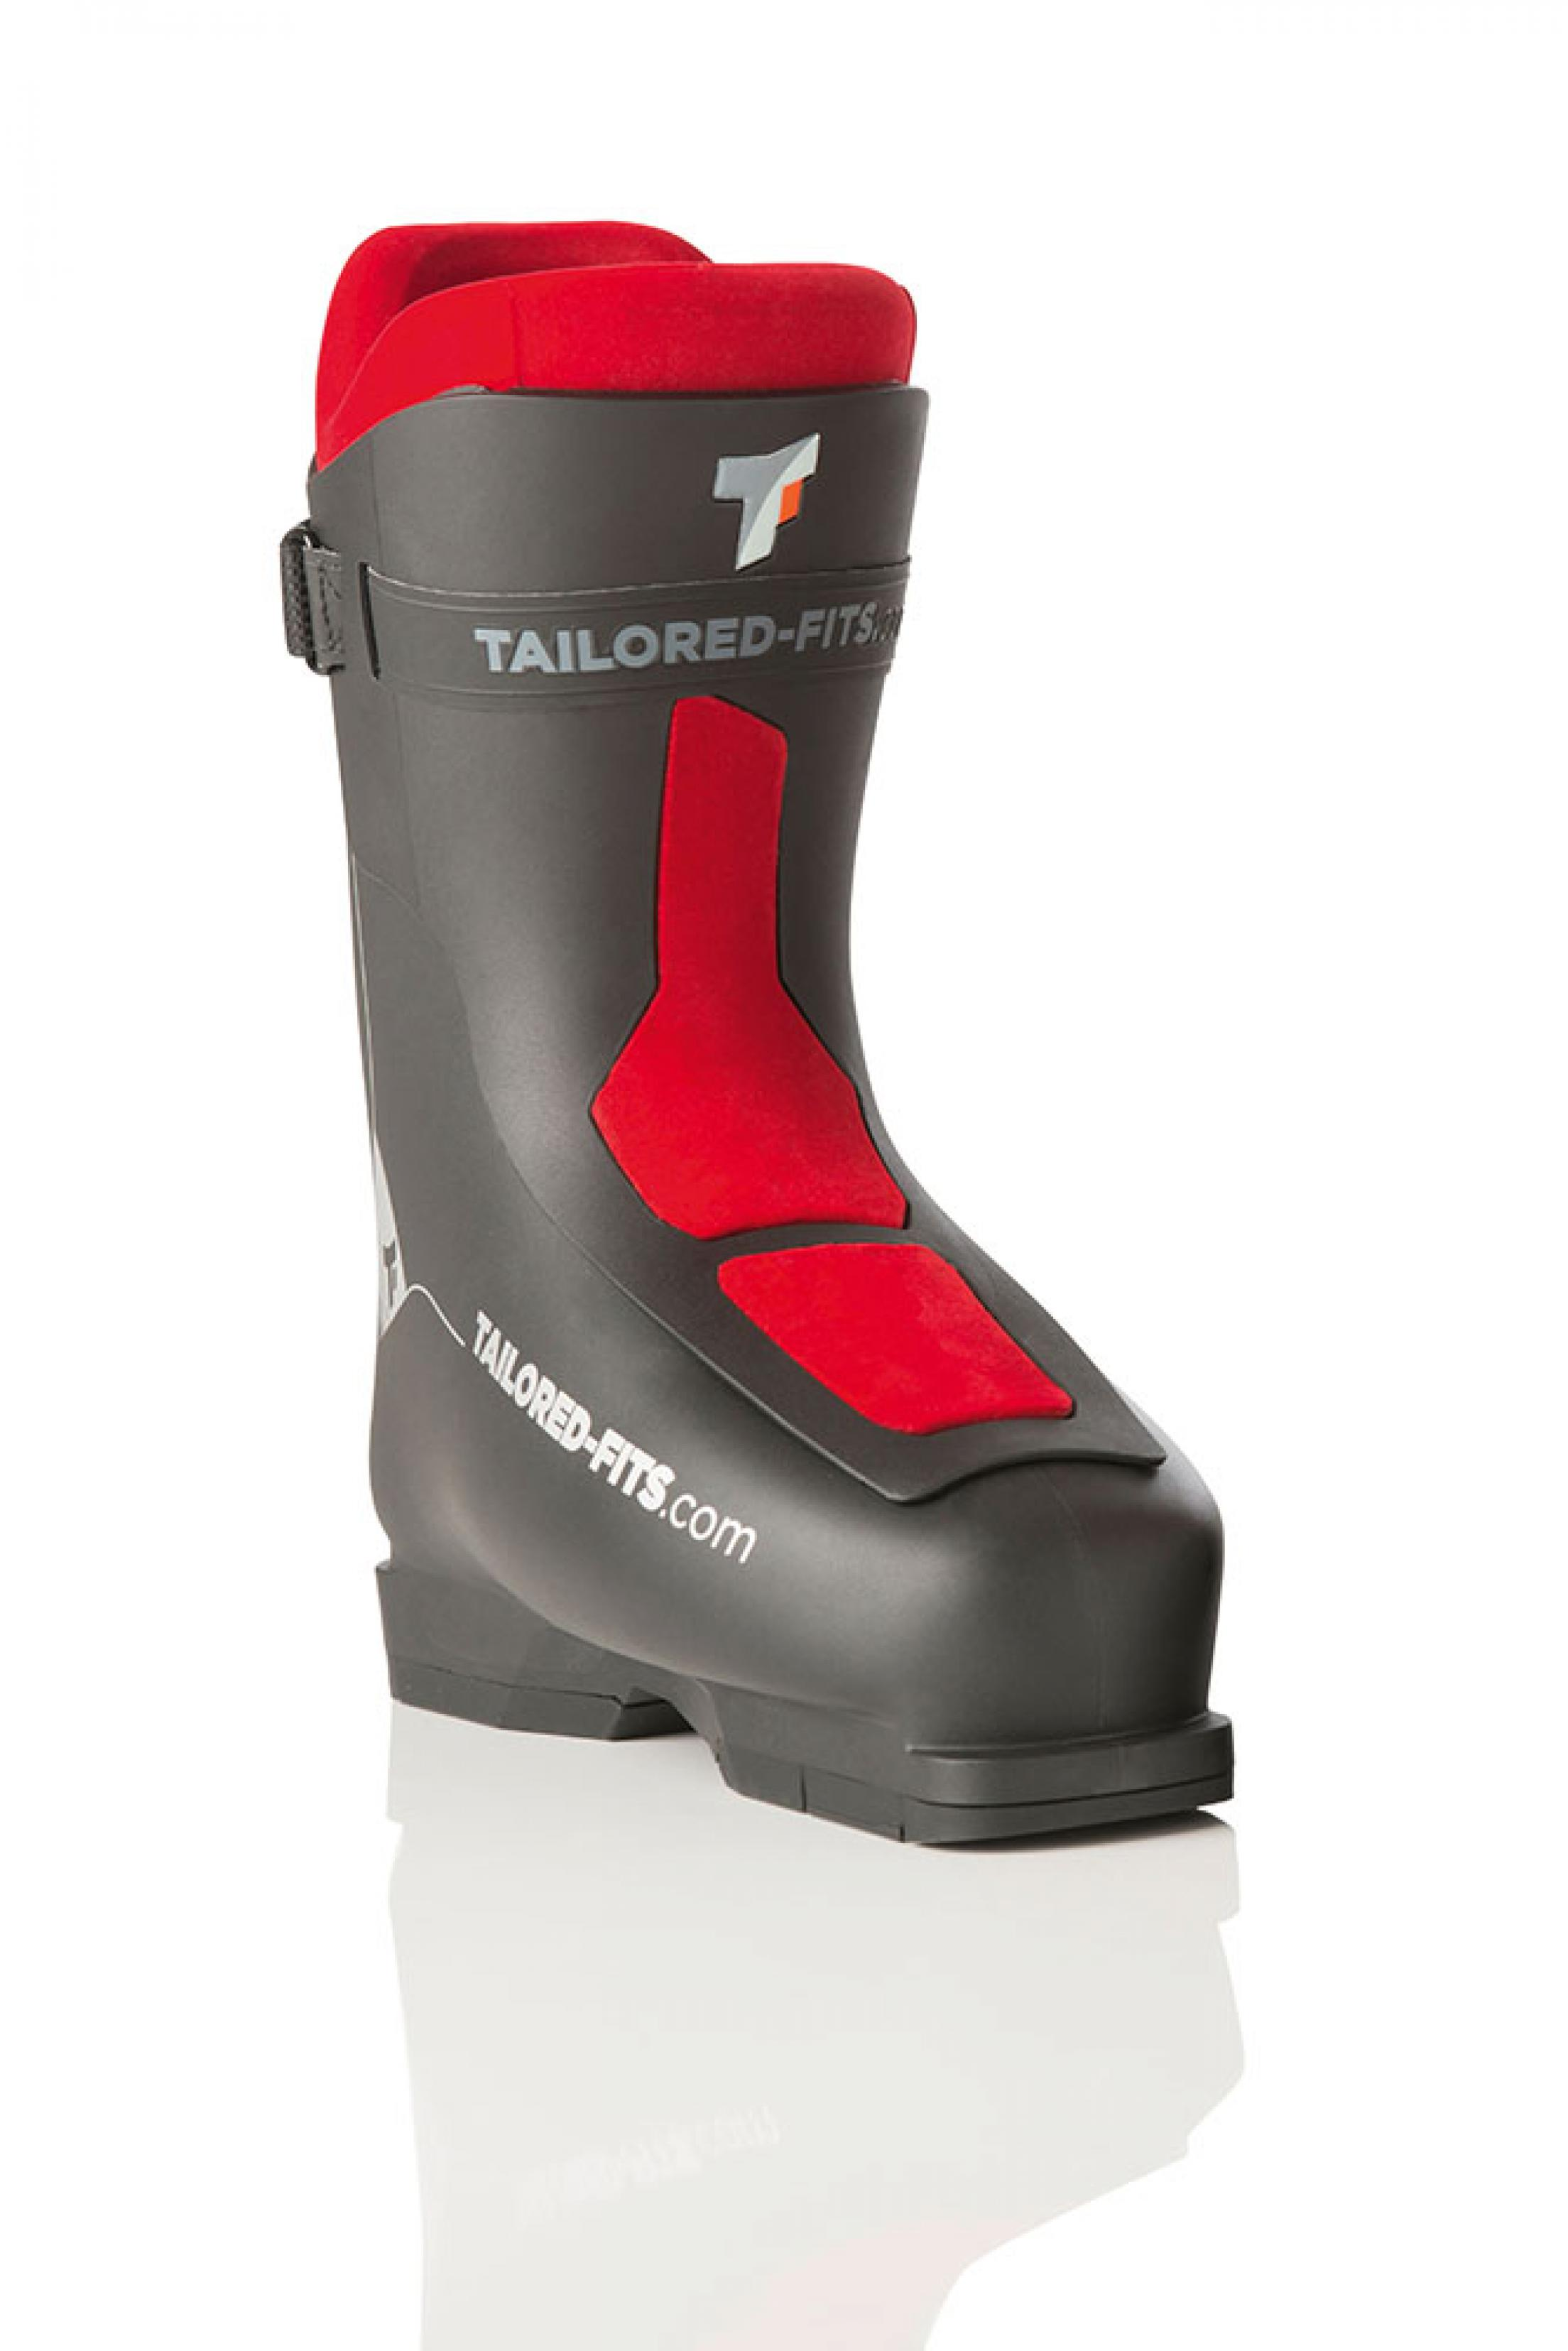 TAILORED FITS custom-fit performance ski boots